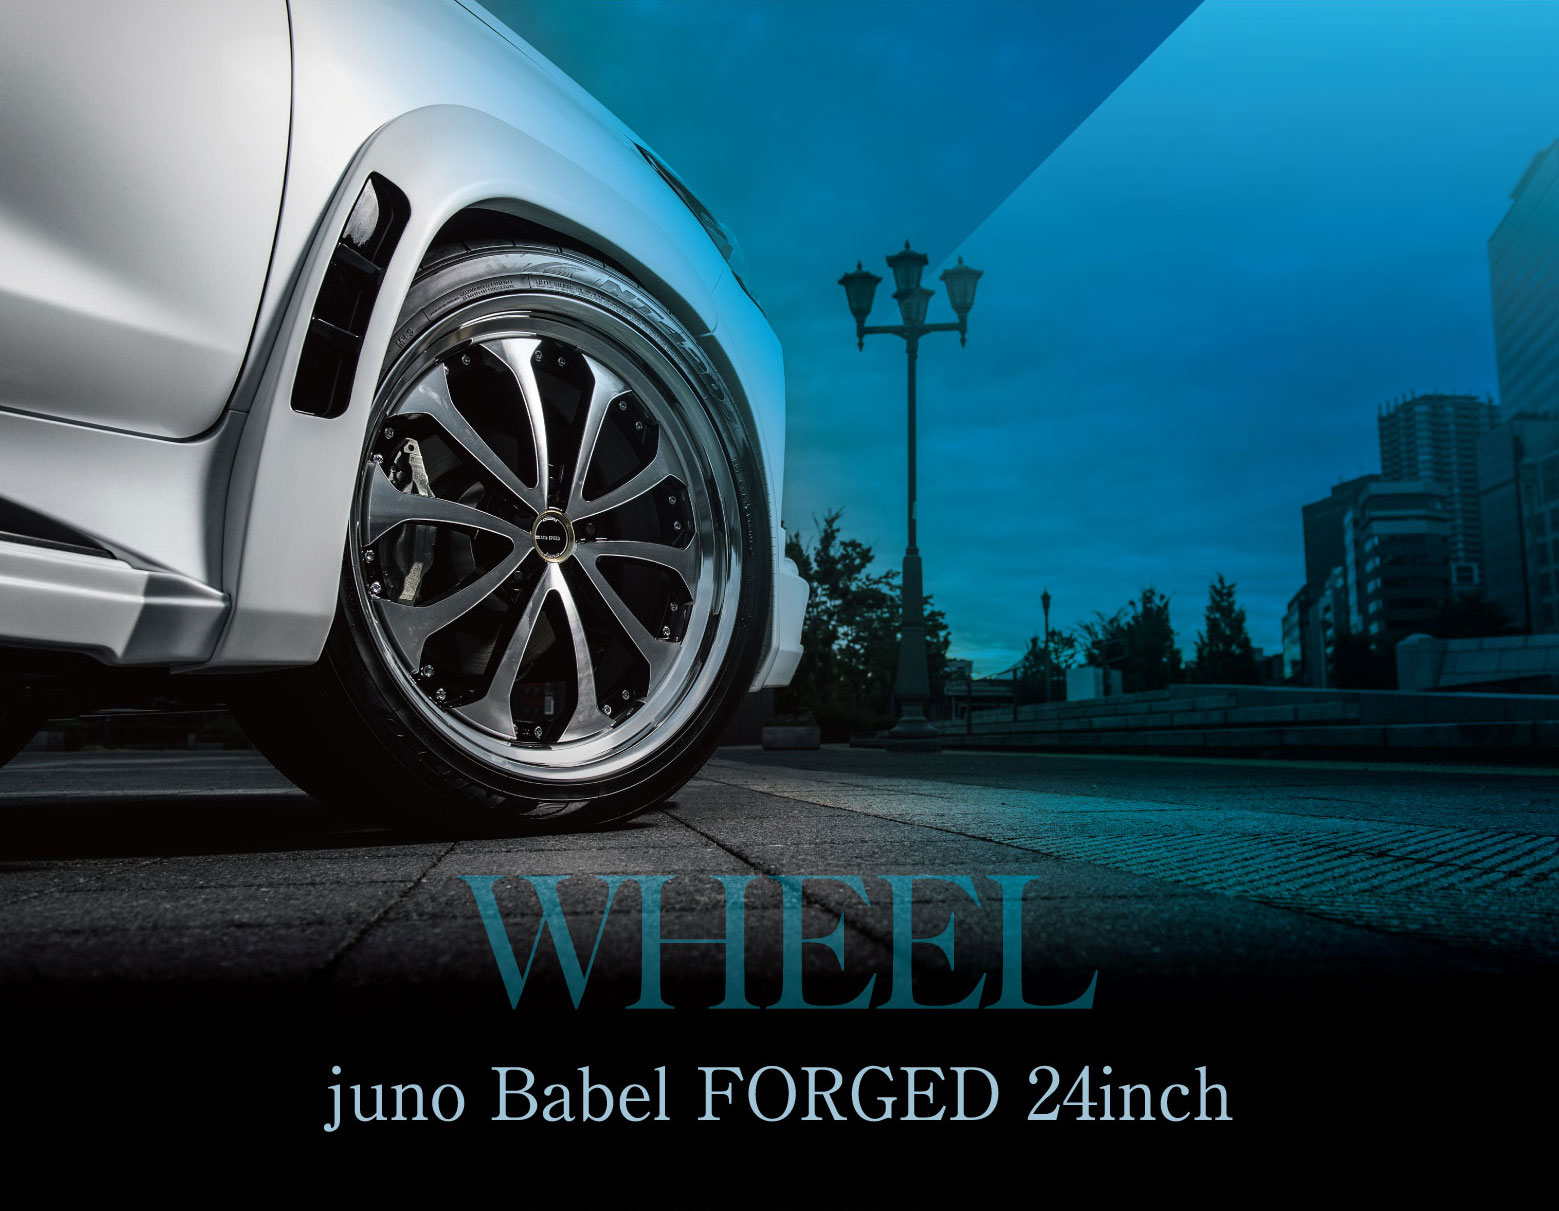 WHEEL juno Babel FORGED 24inch